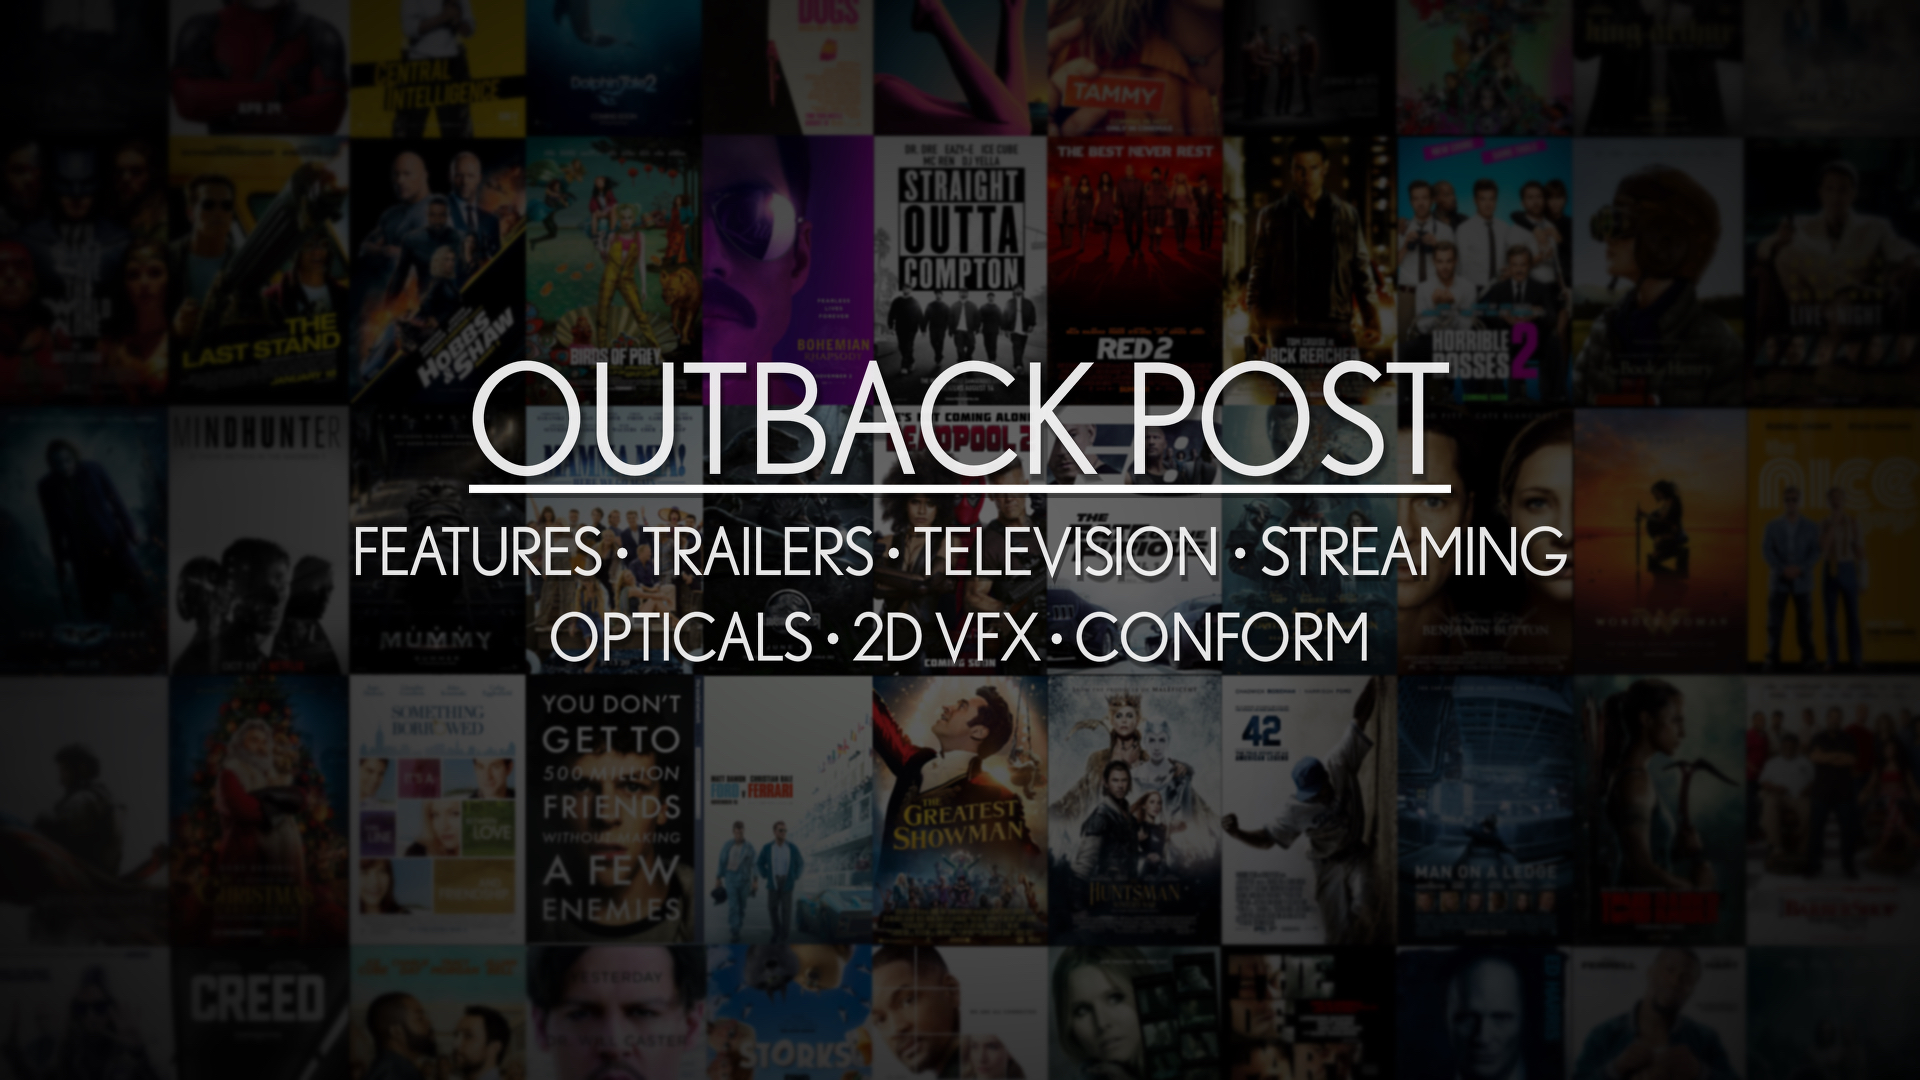 Outback Post - Theatrical Features and Trailers, VFX, Conform- Assorted Movie Posters